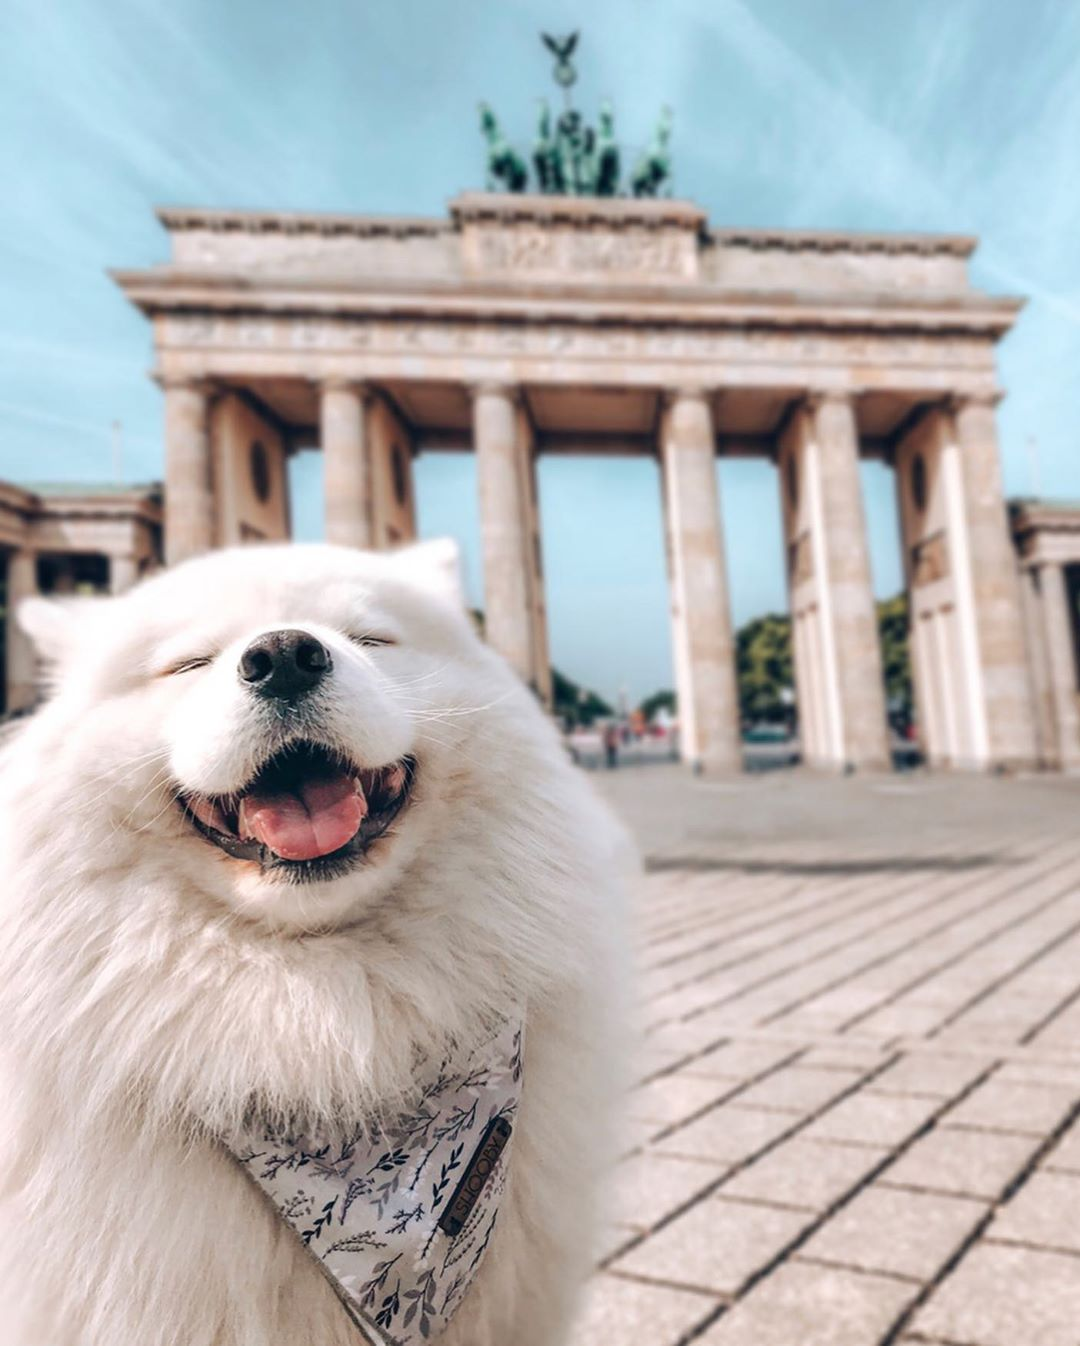 Pin By Bonnie Louise Choi On Instagram Aesthetic In 2020 Samoyed Dogs